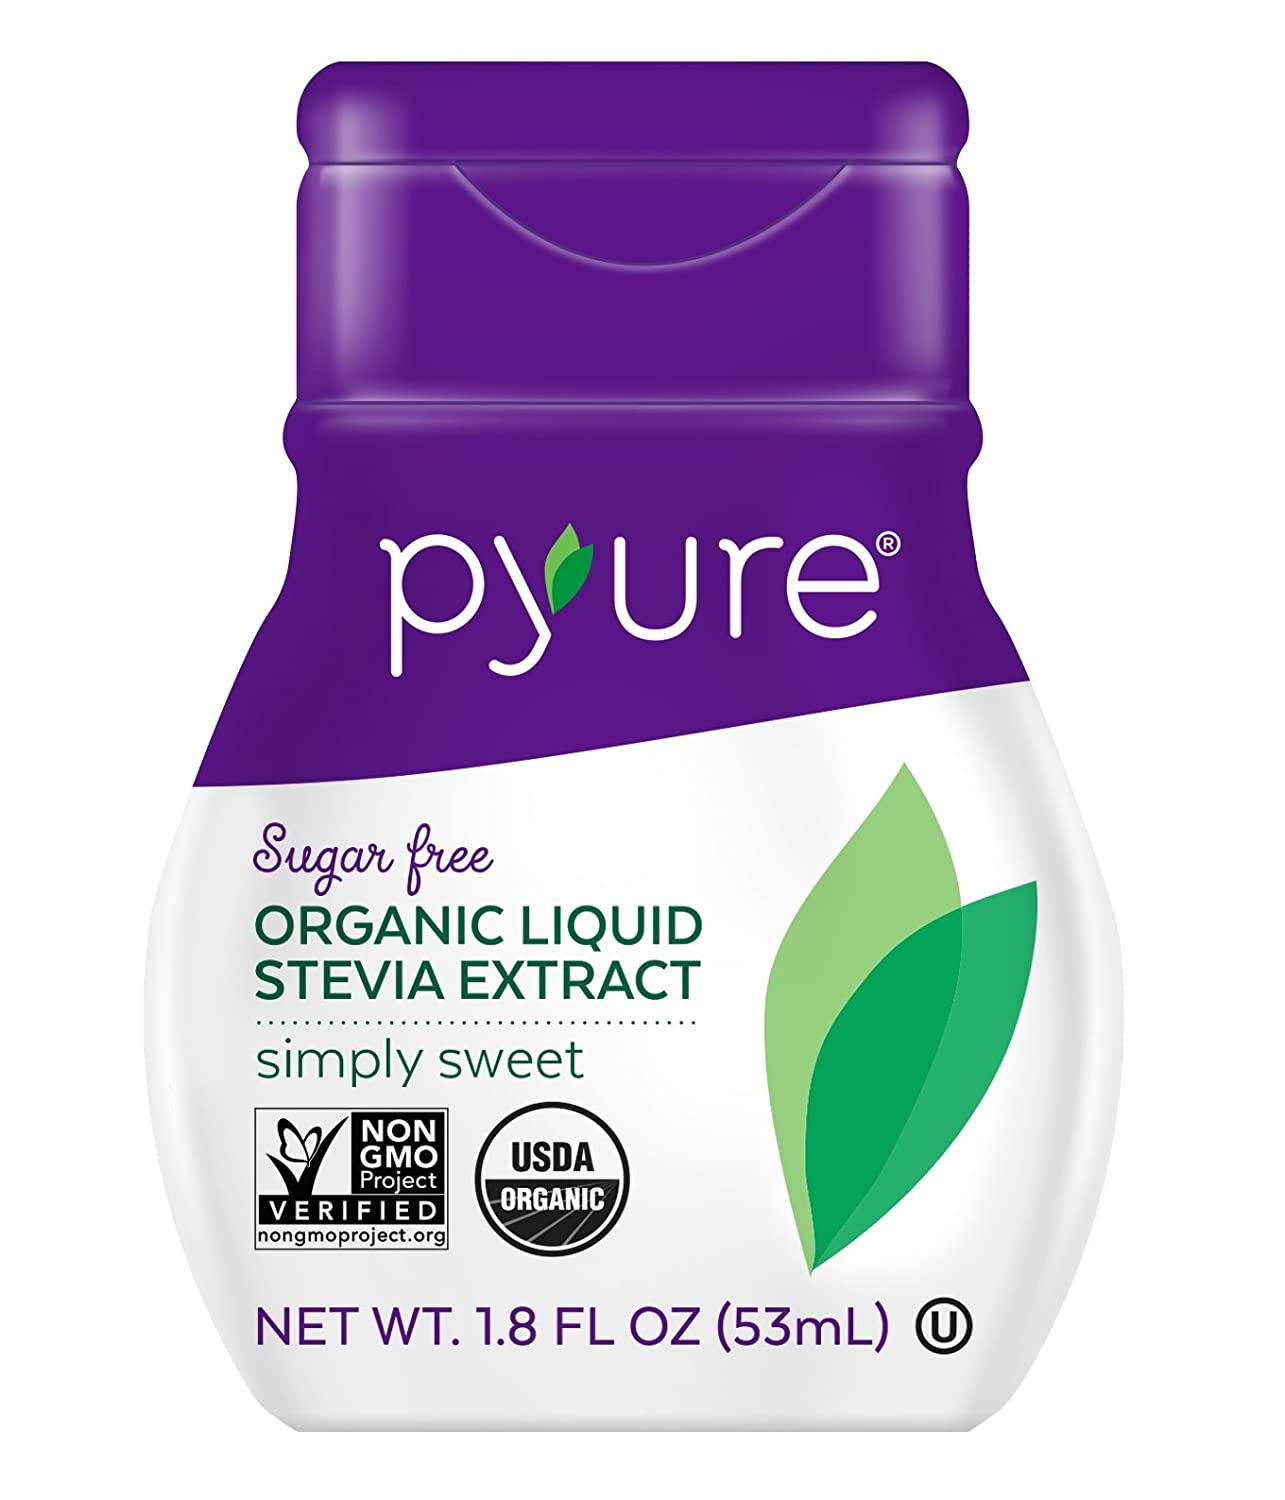 Pyure Organic Liquid Stevia Extract Sweetener, Simply Sweet, Sugar Substitute, 200 Servings, 1.8 Fluid Ounce